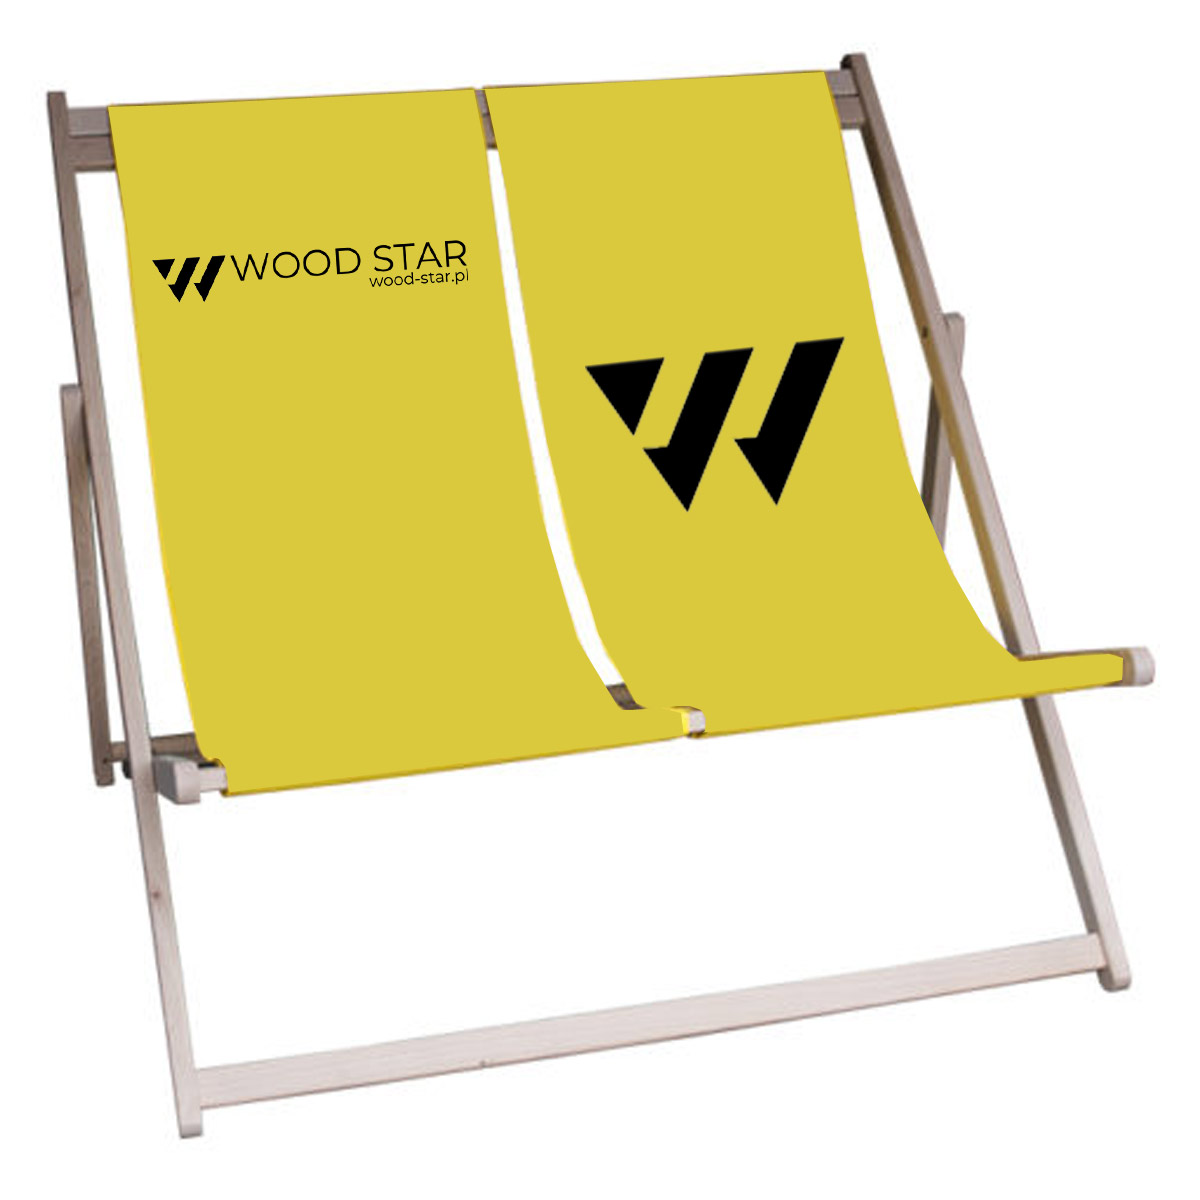 Wood sunbed with logo